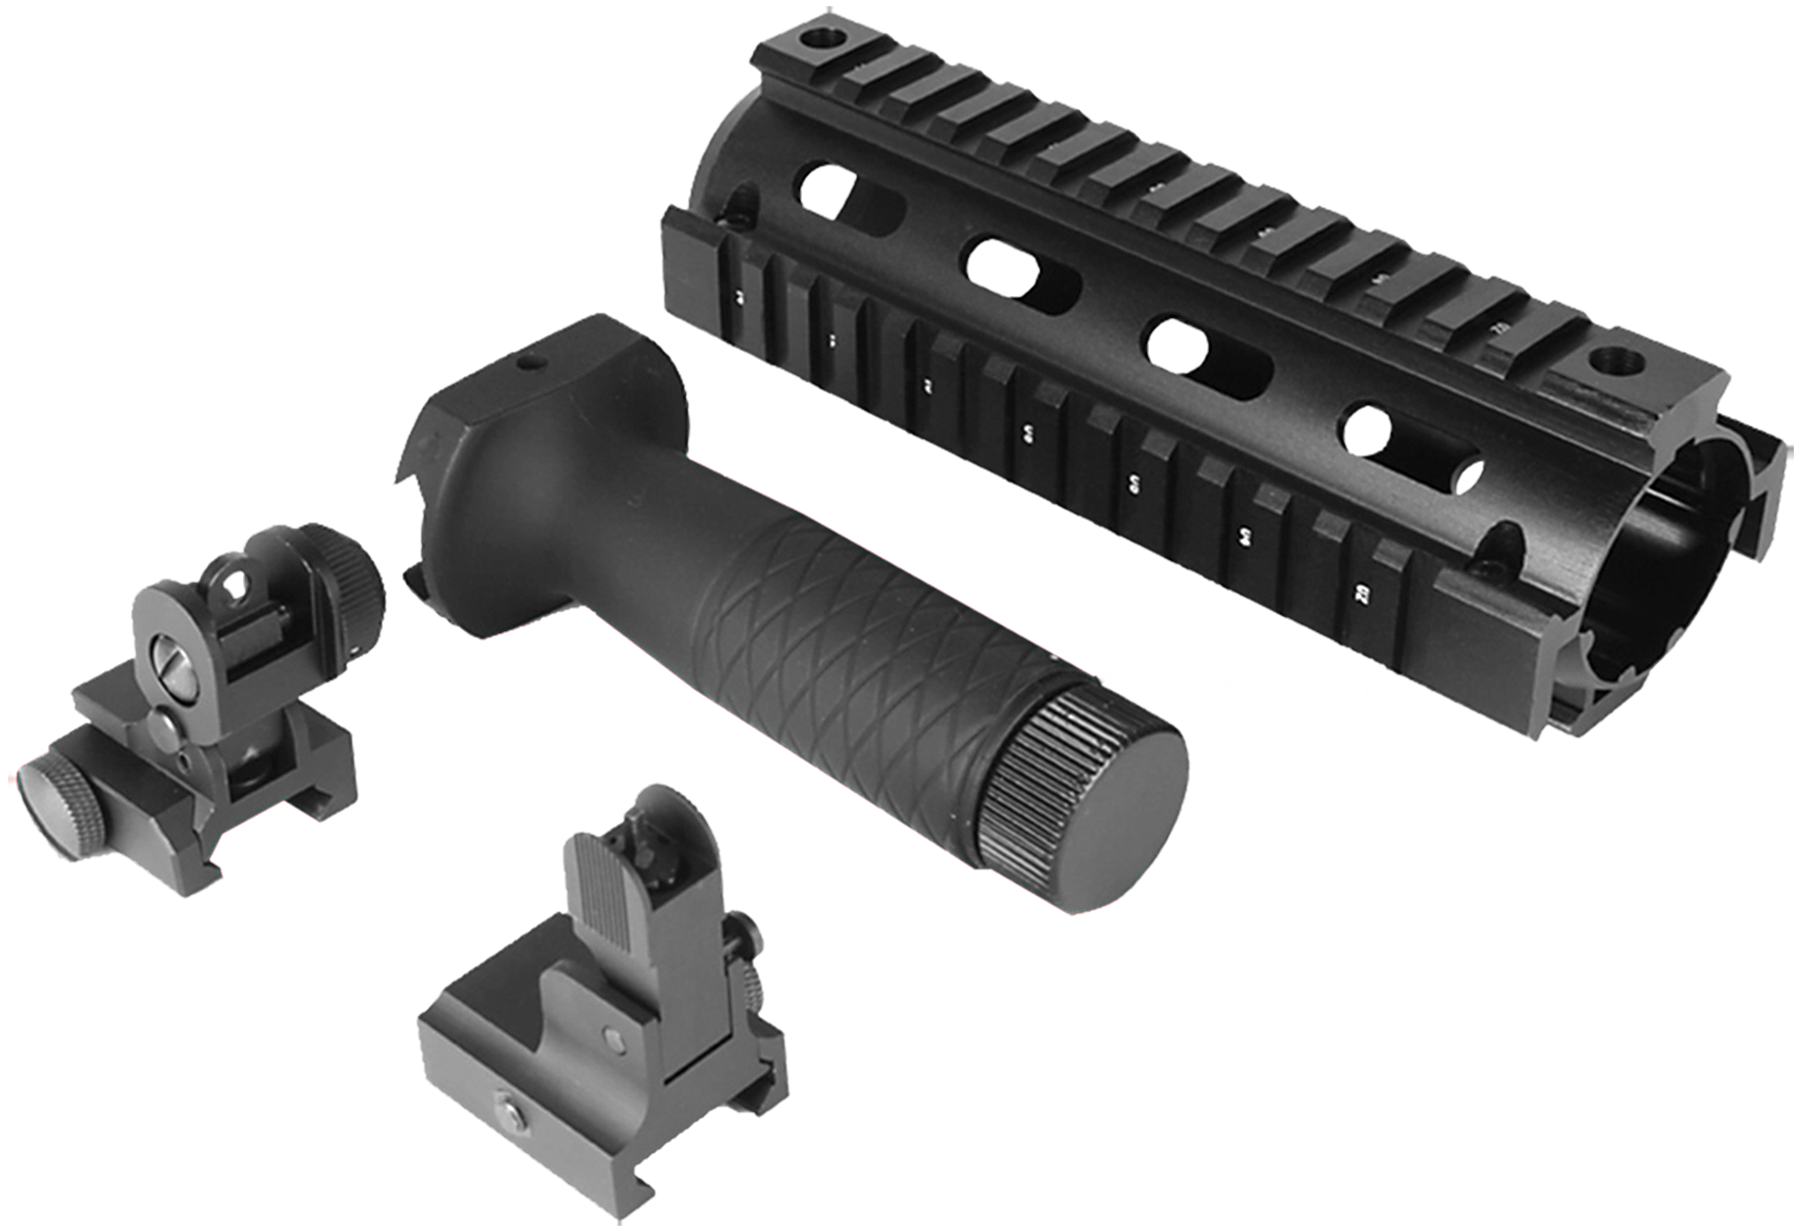 Aim Sports ACAR02 AR/M4 Aluminum Black/Anodized Forend with Flip-Up Front/Rear Sights